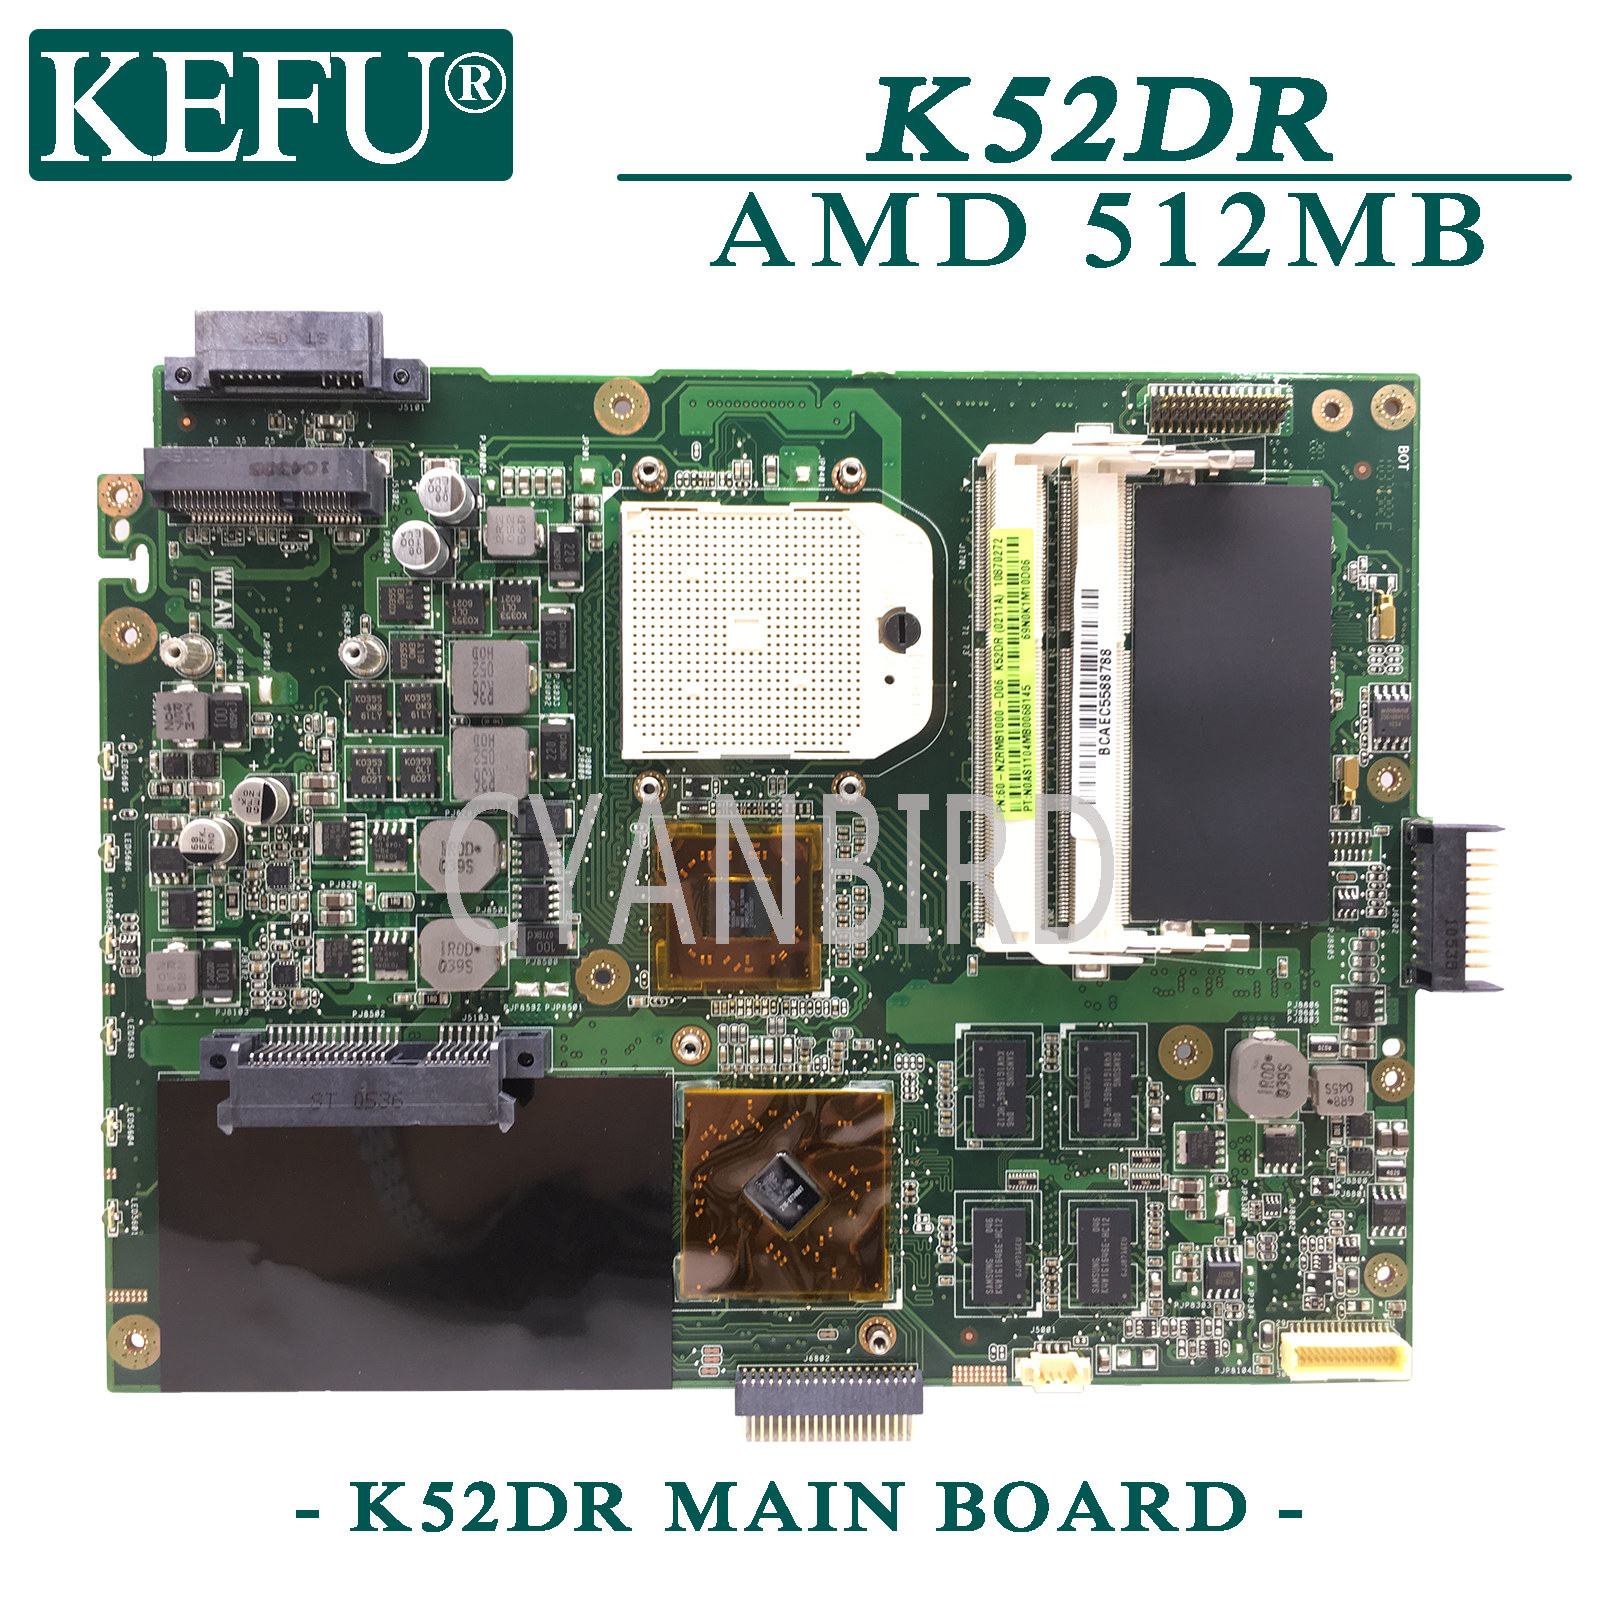 KEFU K52DR Original Mainboard For ASUS K52DR A52DE K52DE A52DR K52D With AMD 512MB Video Card Laptop Motherboard